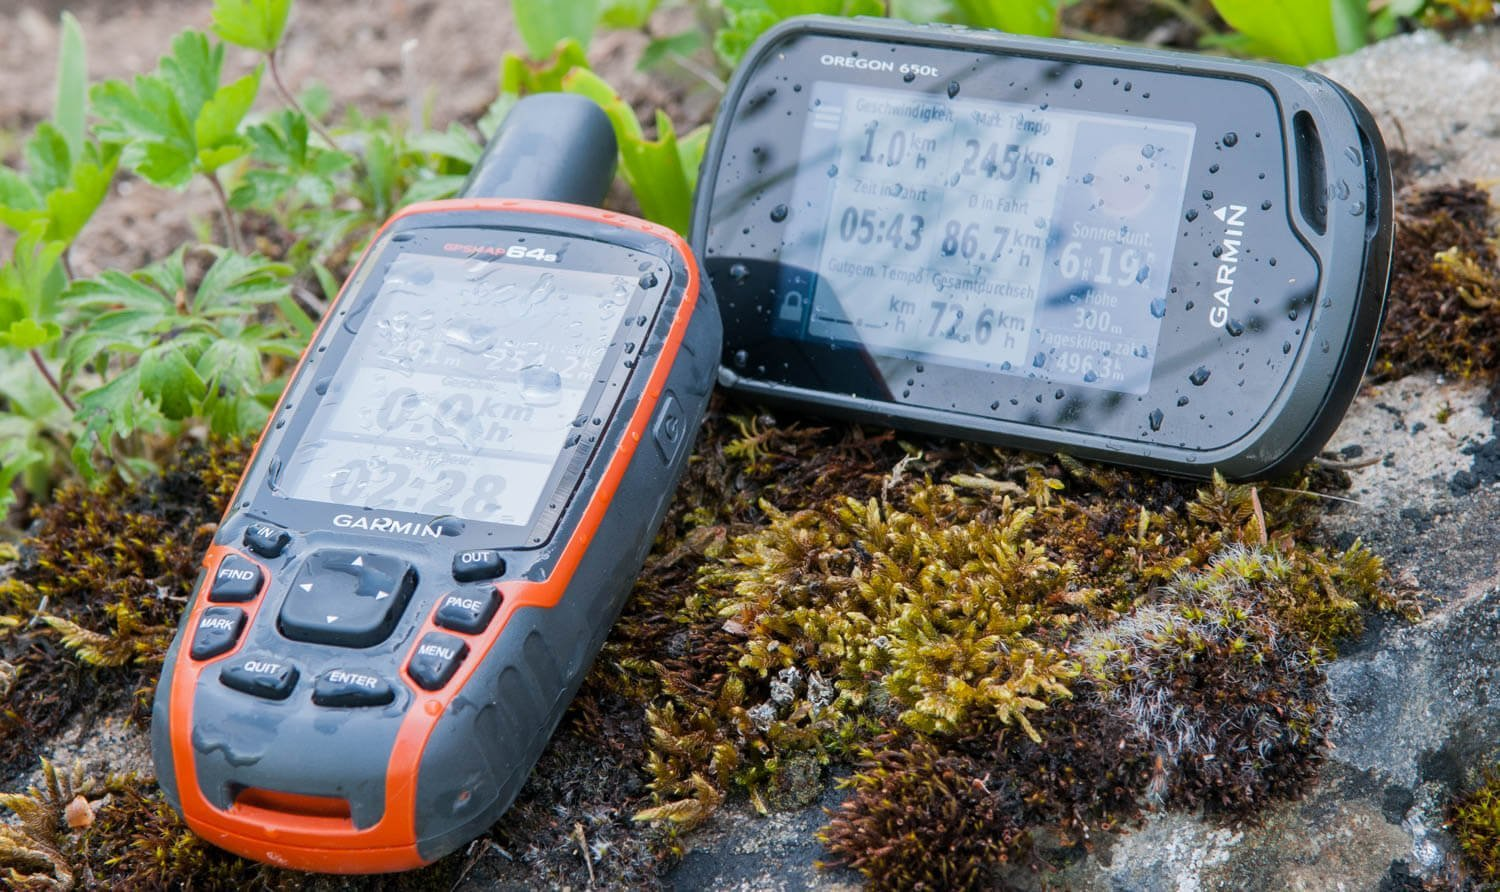 garmin map 64s with Vergleich Garmin Oregon 650t Garmin Gpsmap 64s on Test Honor 7 Smartphone 148376 0 likewise Products together with Acessorios Para Motos 150 additionally 149523 Garmin Gpsmap 64s Discoverer Bundle With Gb 1 50k Os Map furthermore Garmin Gpsmap 64s Handheld Gps Unit.